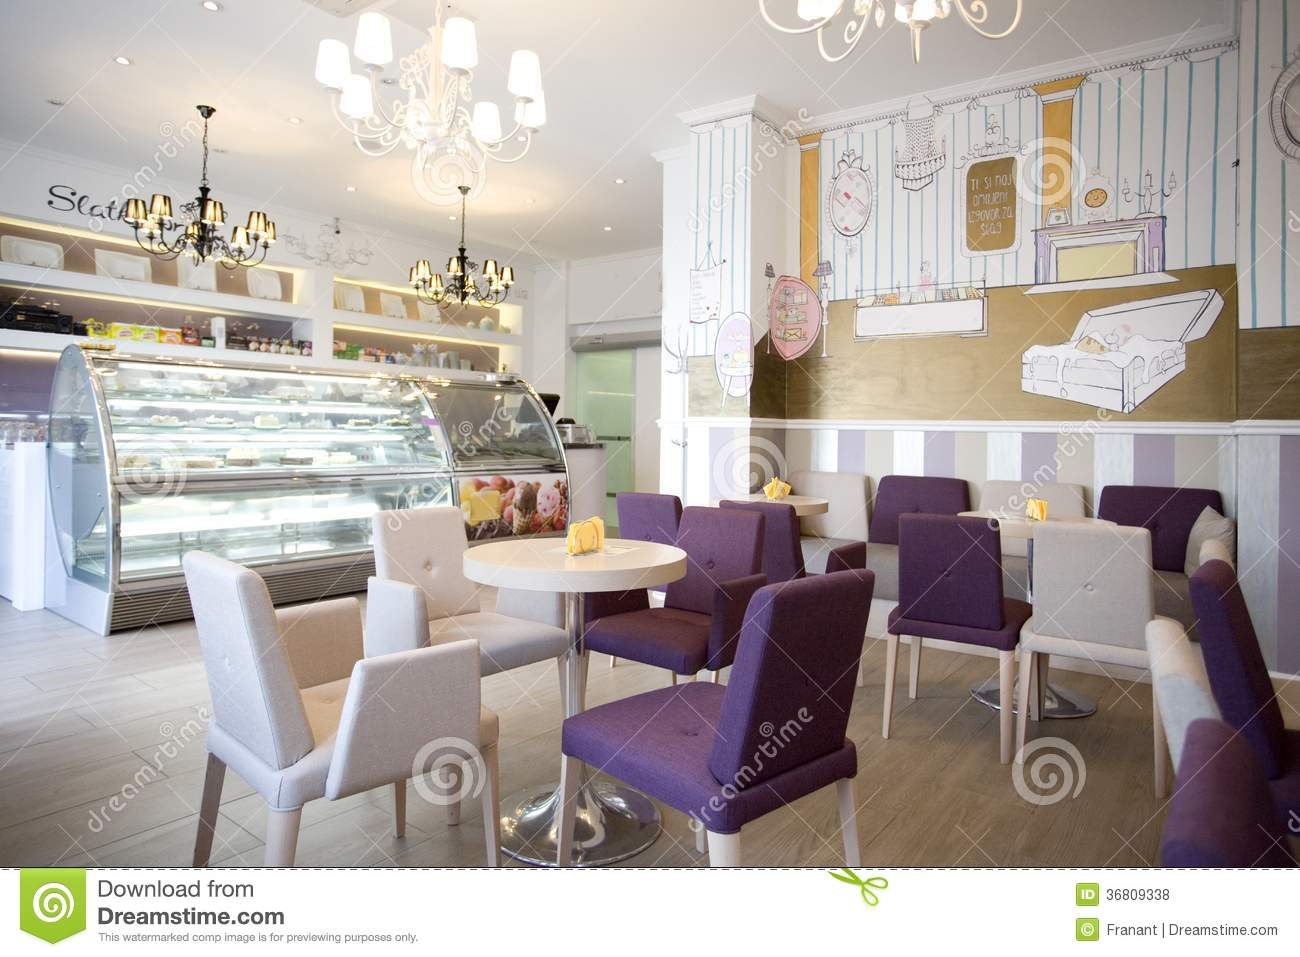 Interior design stock photo image of eating romantic for Interior design photos